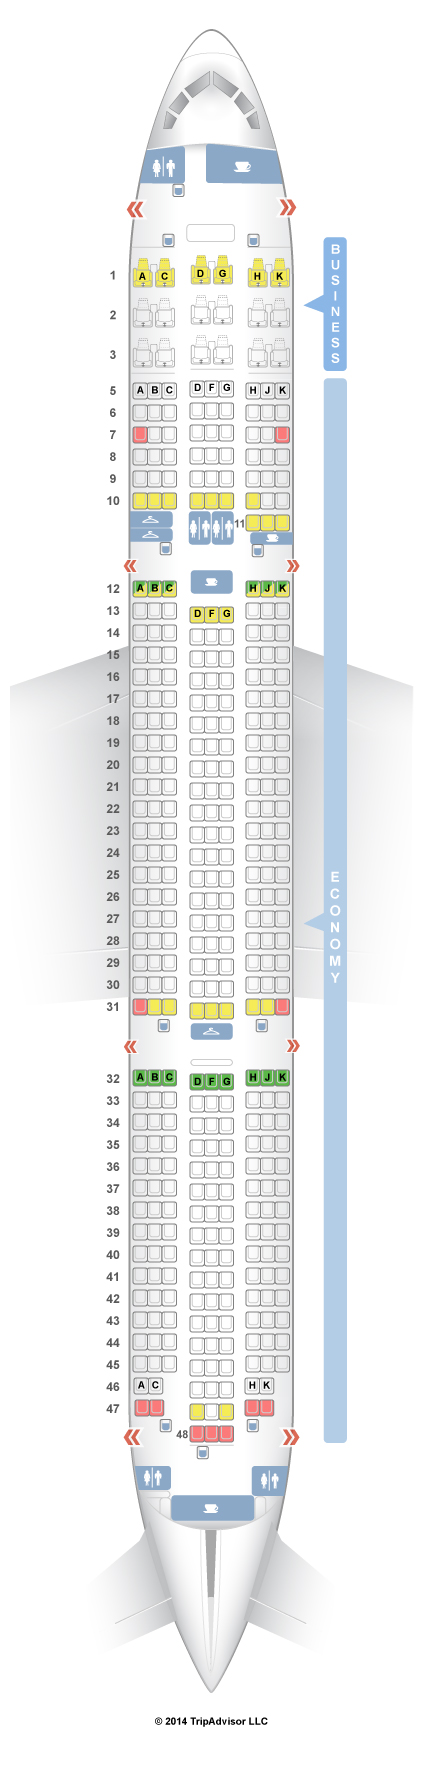 Ana 787 Seat Map | Elcho Table